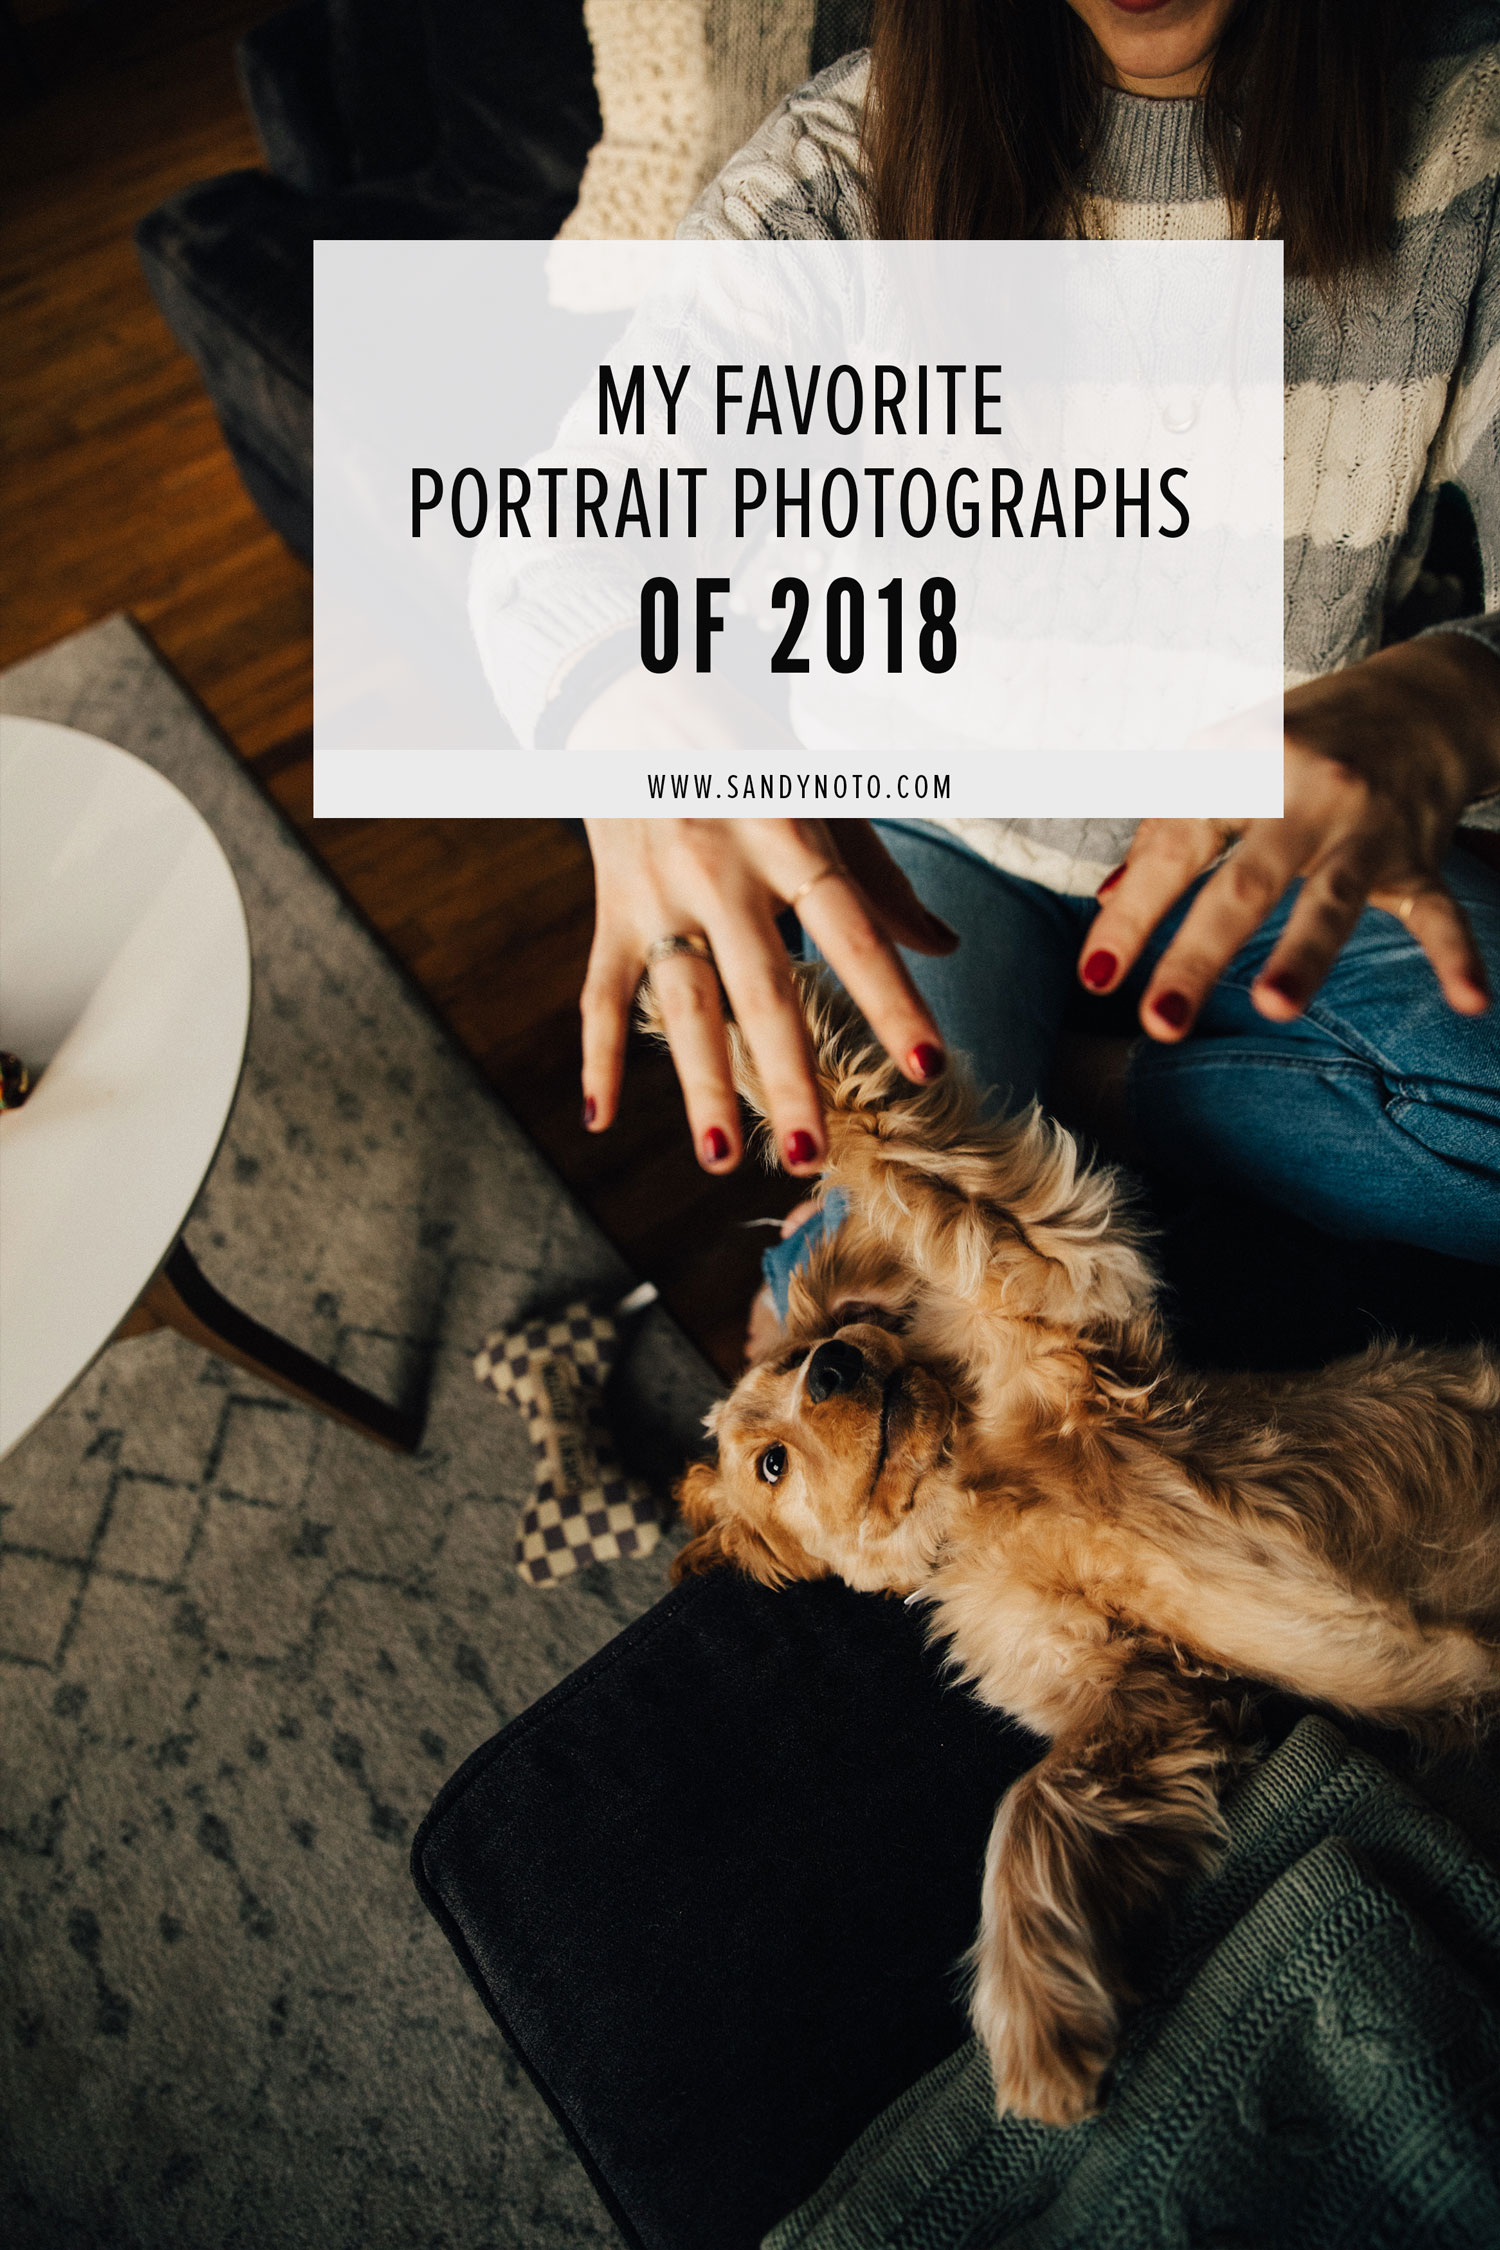 My Favorite Portrait Photographs from 2018